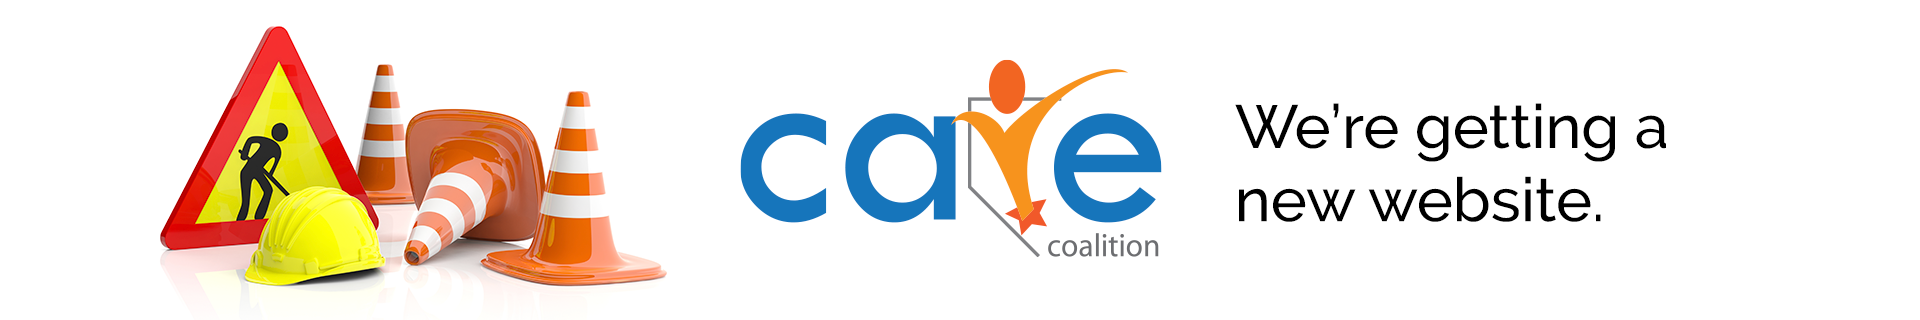 Care Coalition